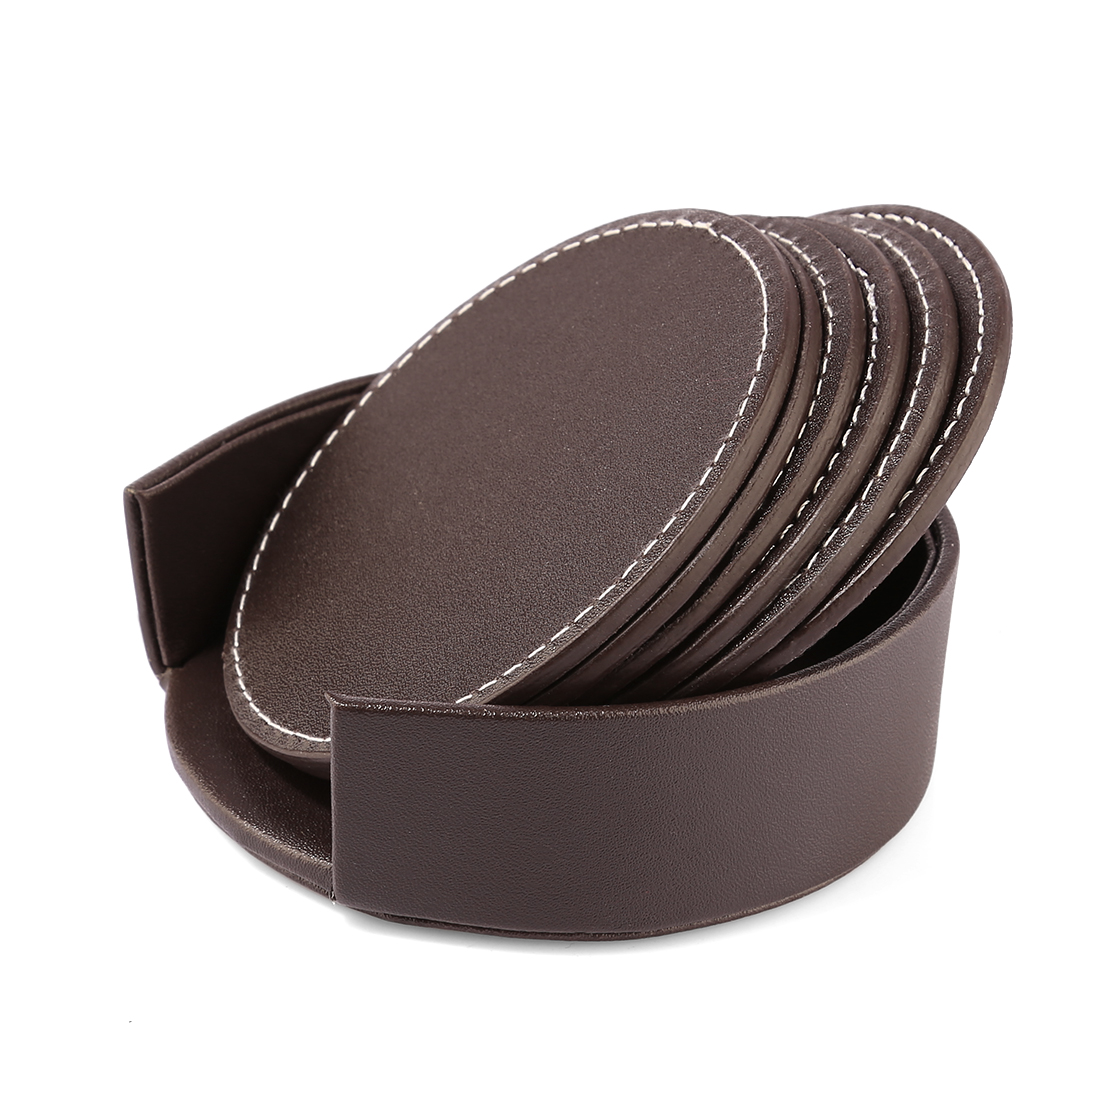 E-SHOW 6Pcs PU Leather Heat-resistance Placemat Cup Mats Coffee Mug Drink Coasters Cup Cushion Minions